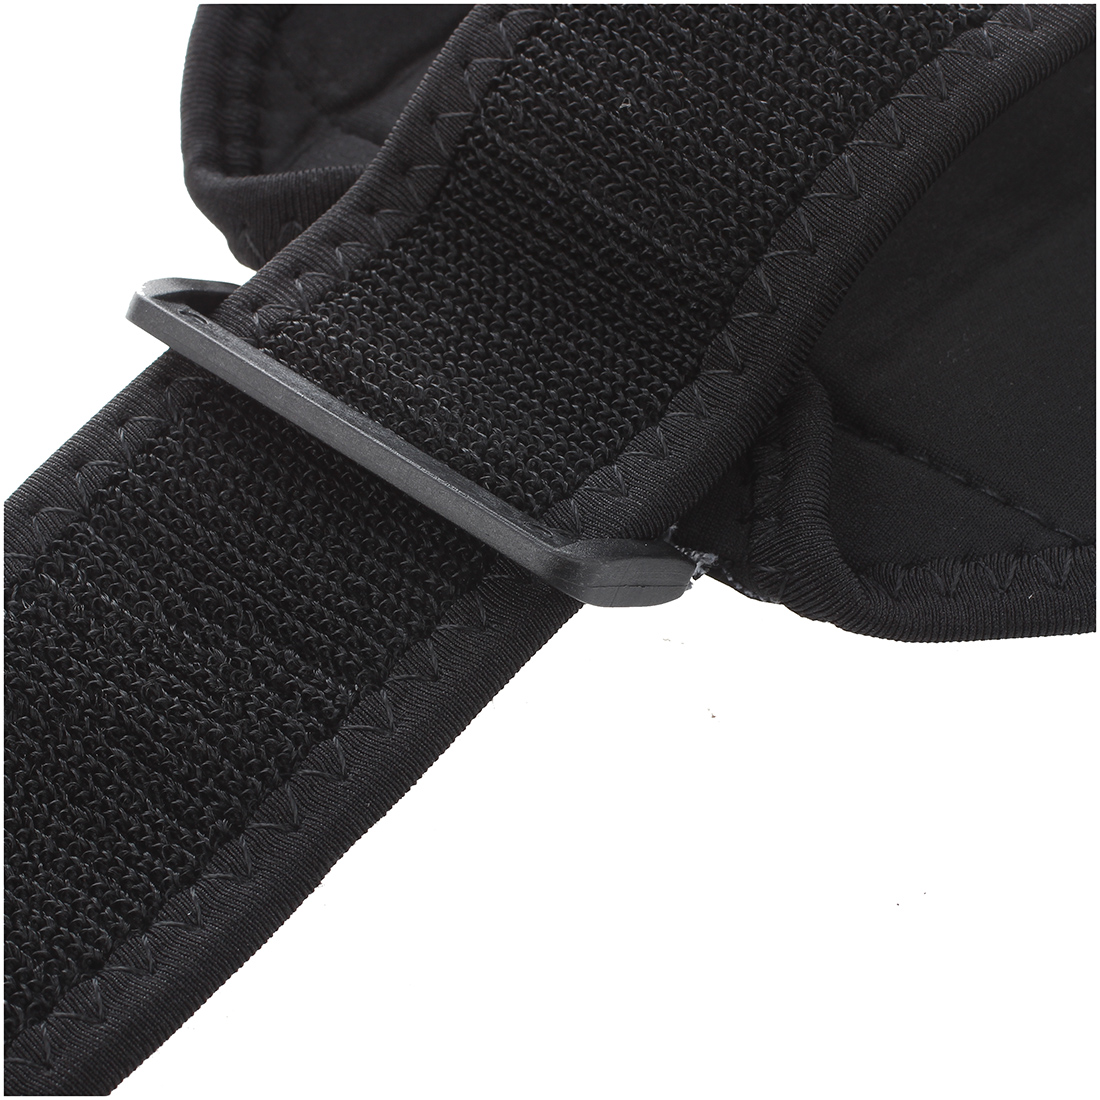 Armband Verlichting Hardlopen Running Armband Pouch For Ipod Touch 2g 3g 4g Dt Ebay